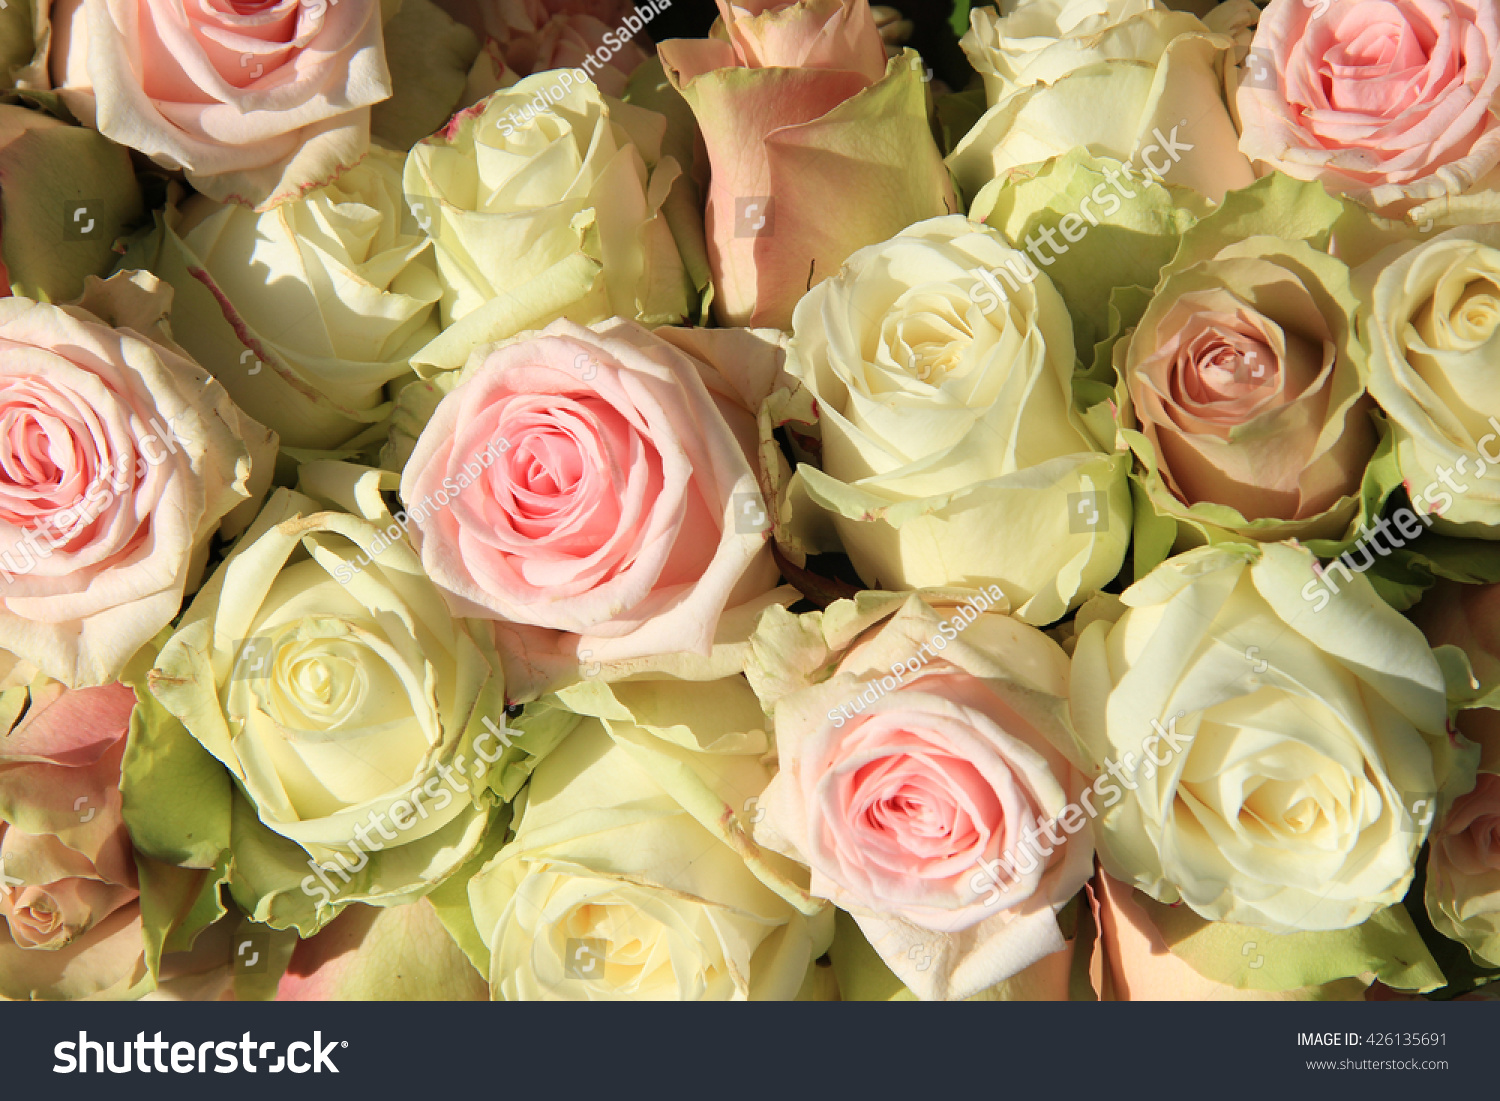 Pastel Wedding Bouquet In Various Shades Of Pink And White Ez Canvas